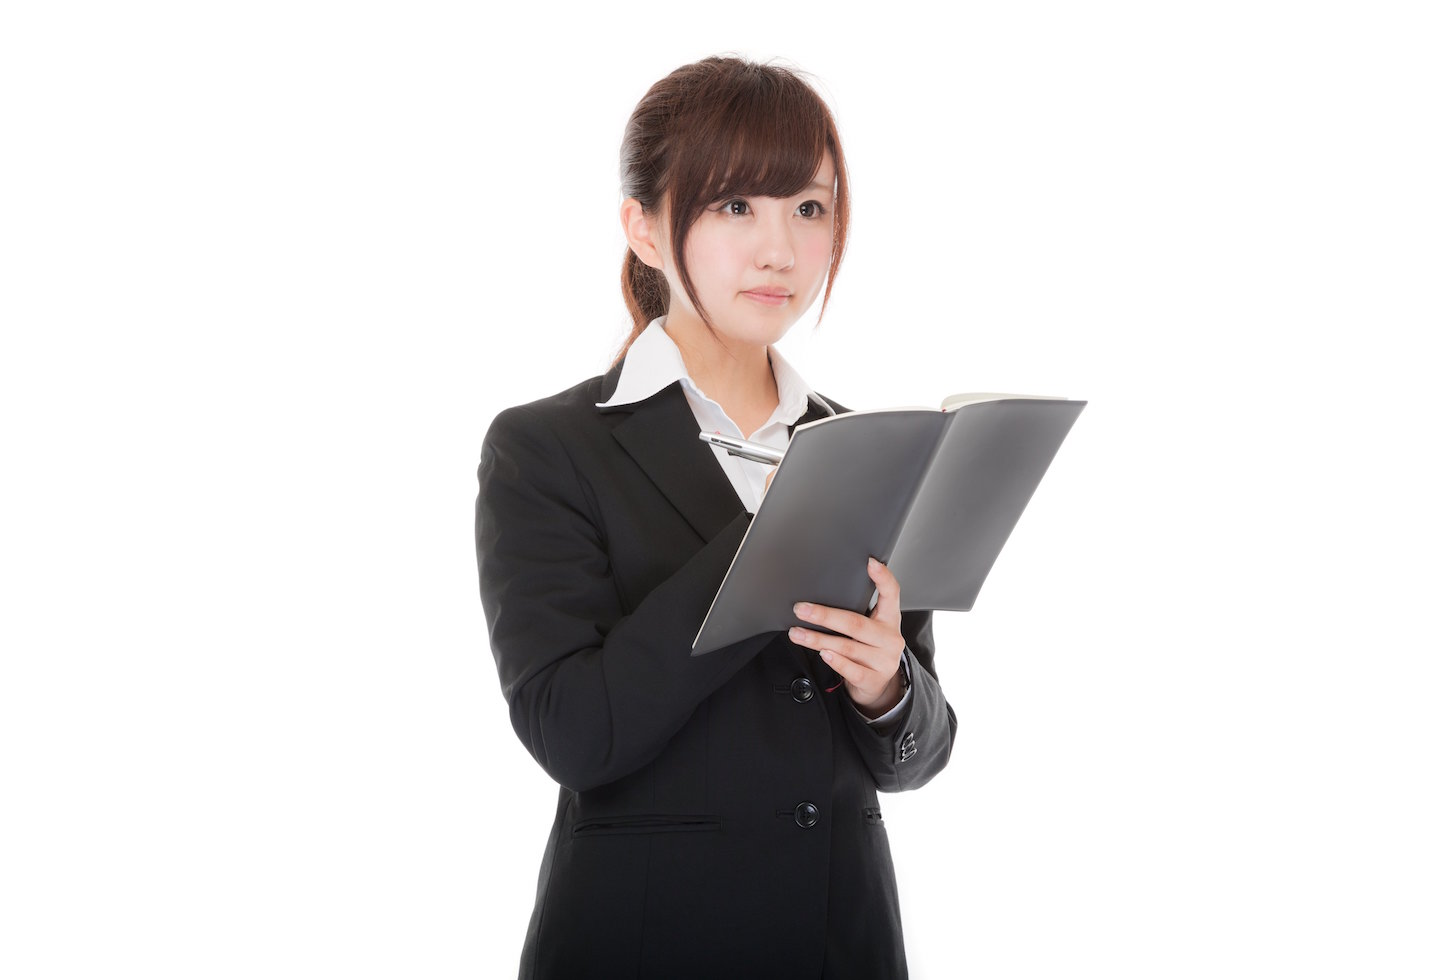 Working office girl